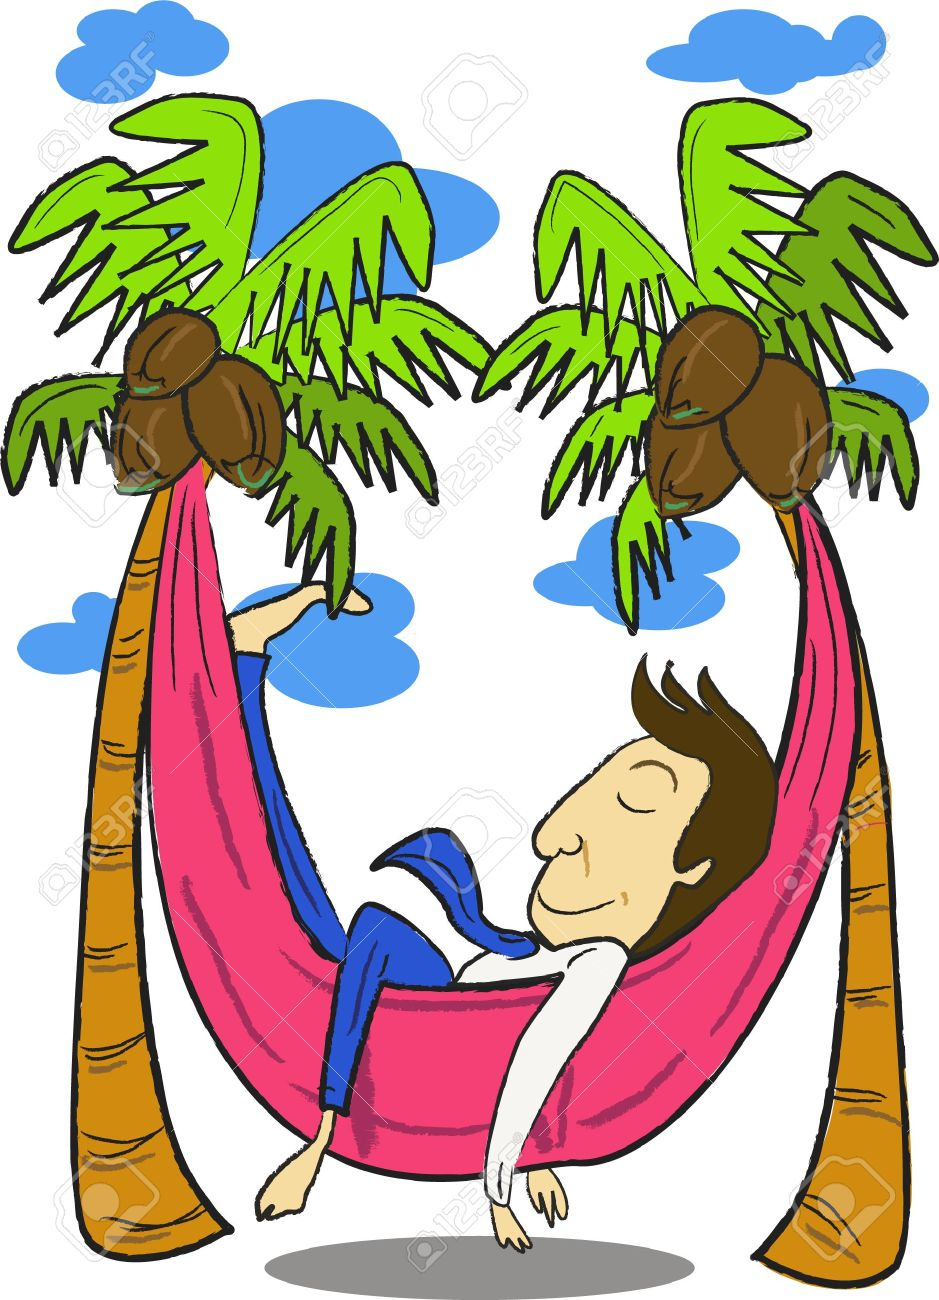 An Image Of A Man Sleeping In Hammock That Is Strung Between Two Palm Trees